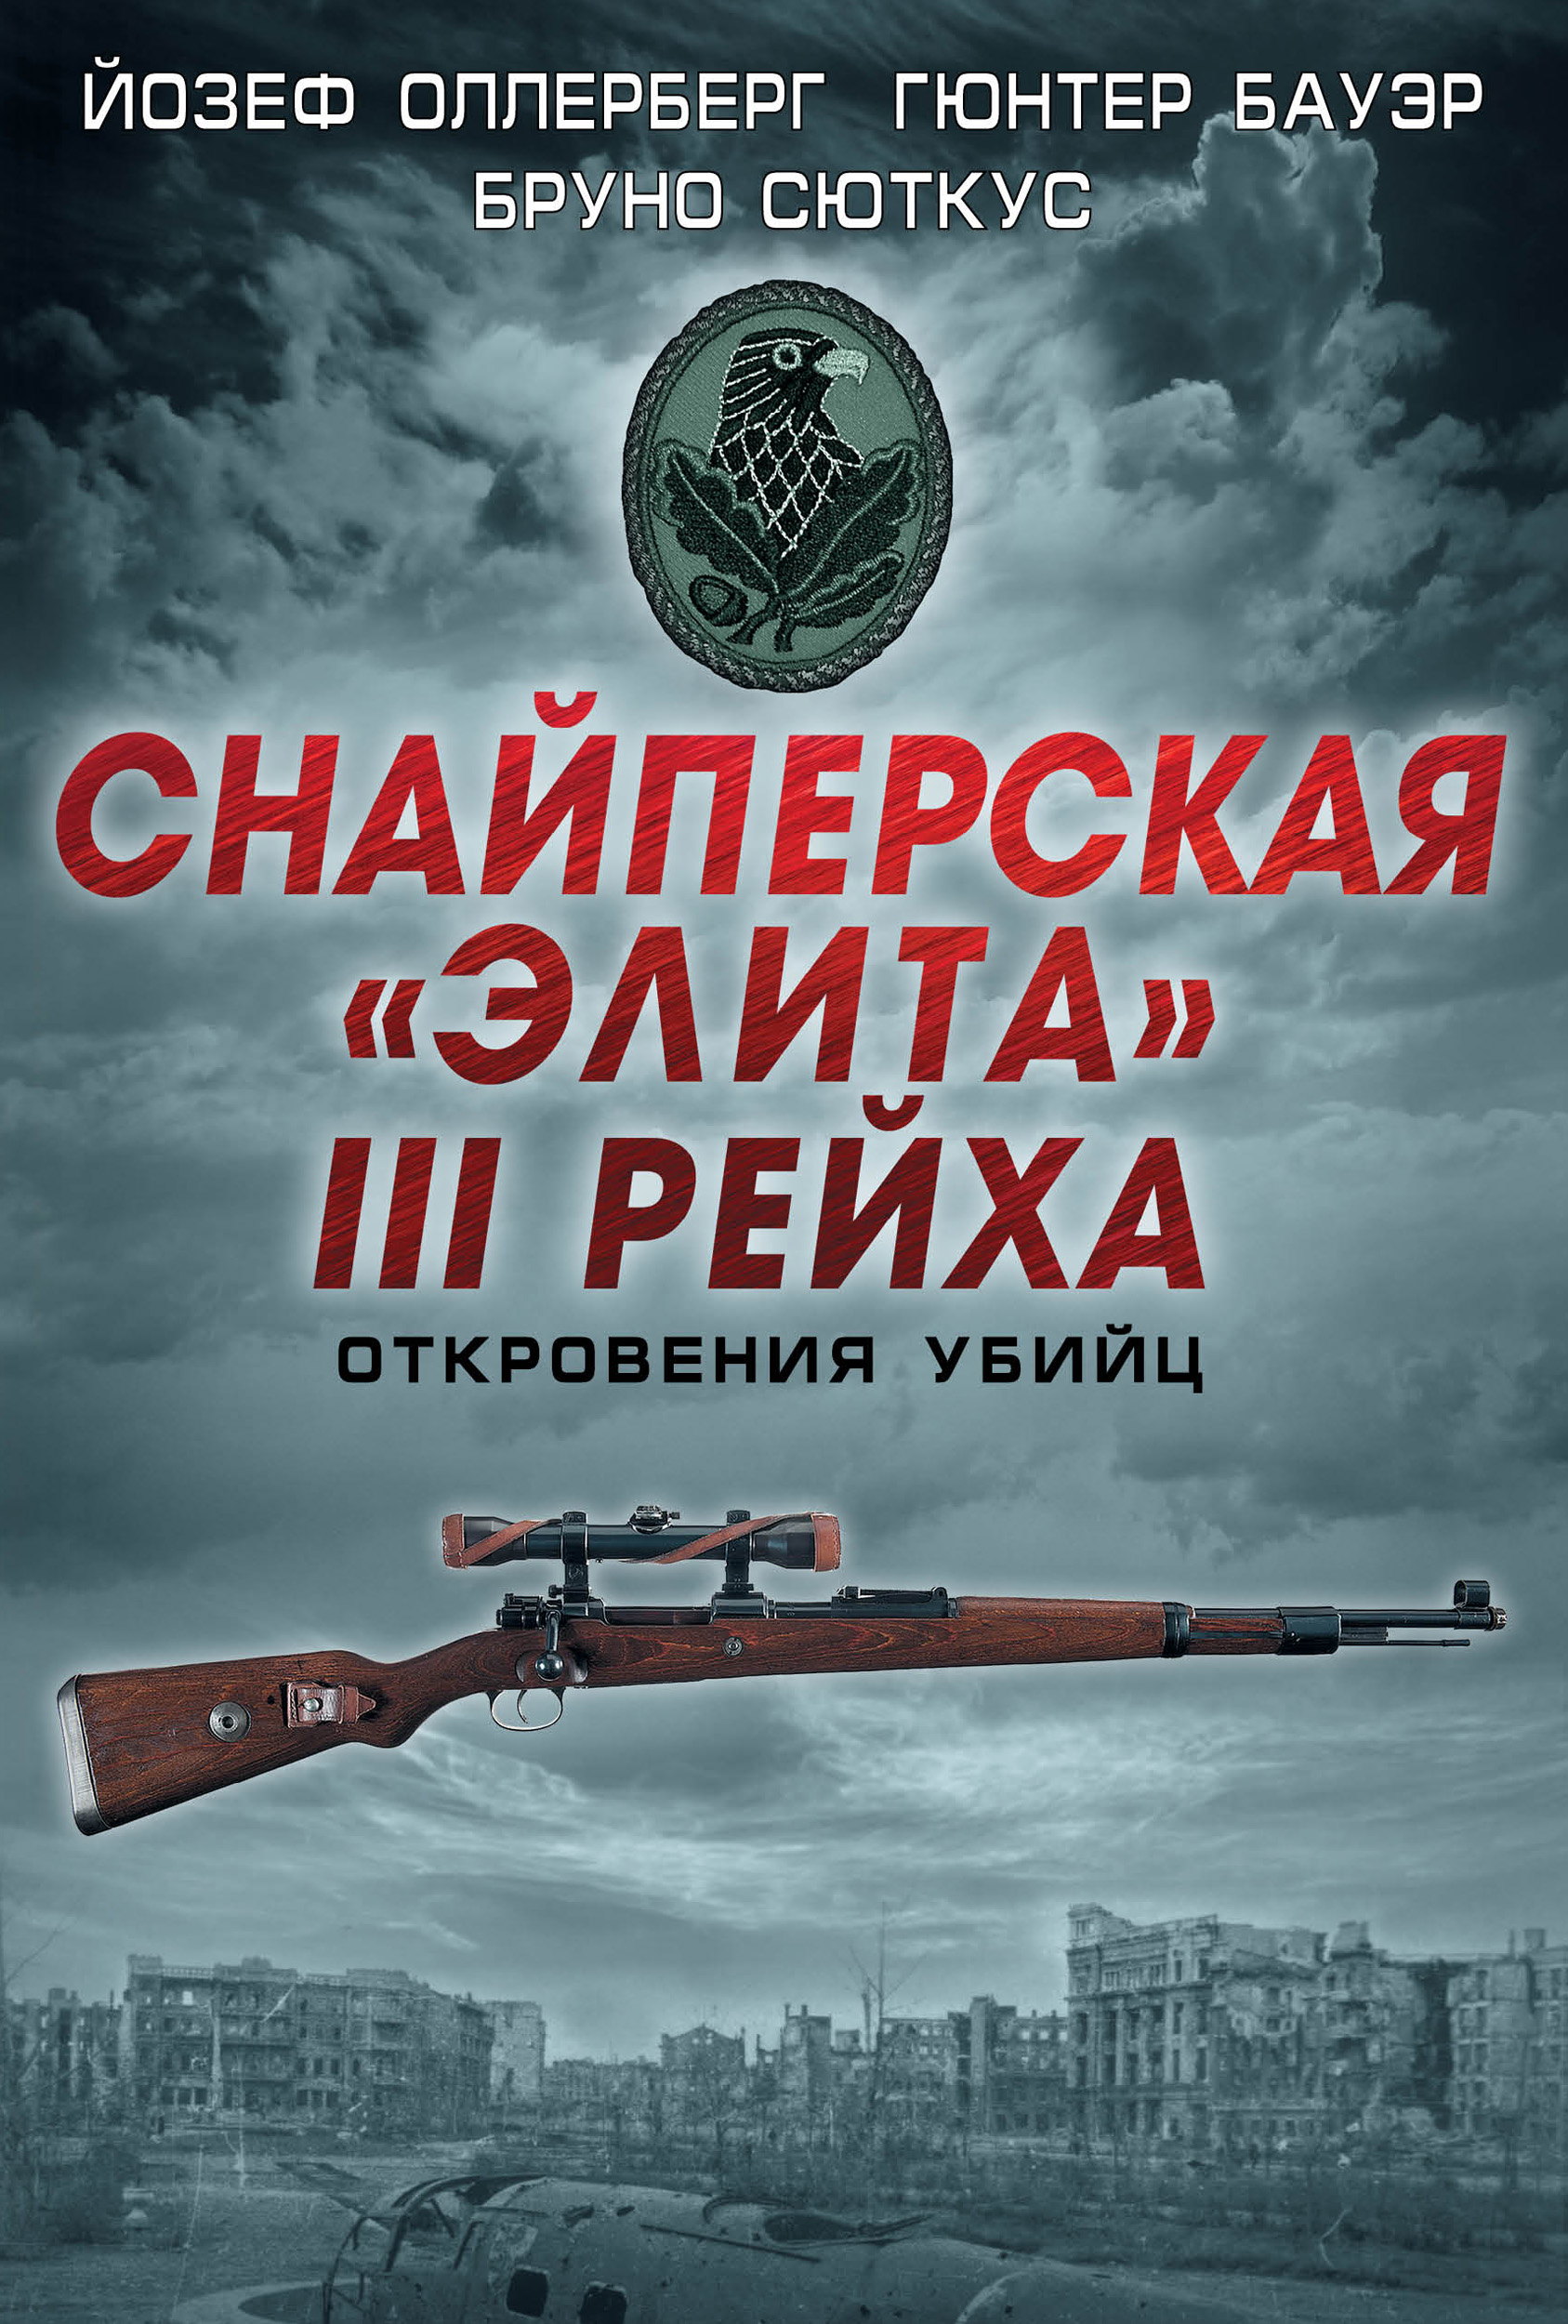 Йозеф Оллерберг Снайперская «элита» III Рейха. Откровения убийц (сборник) three piece tool set gardening tools shovel rake hoe suits flower planting vegetables and flowers gardening